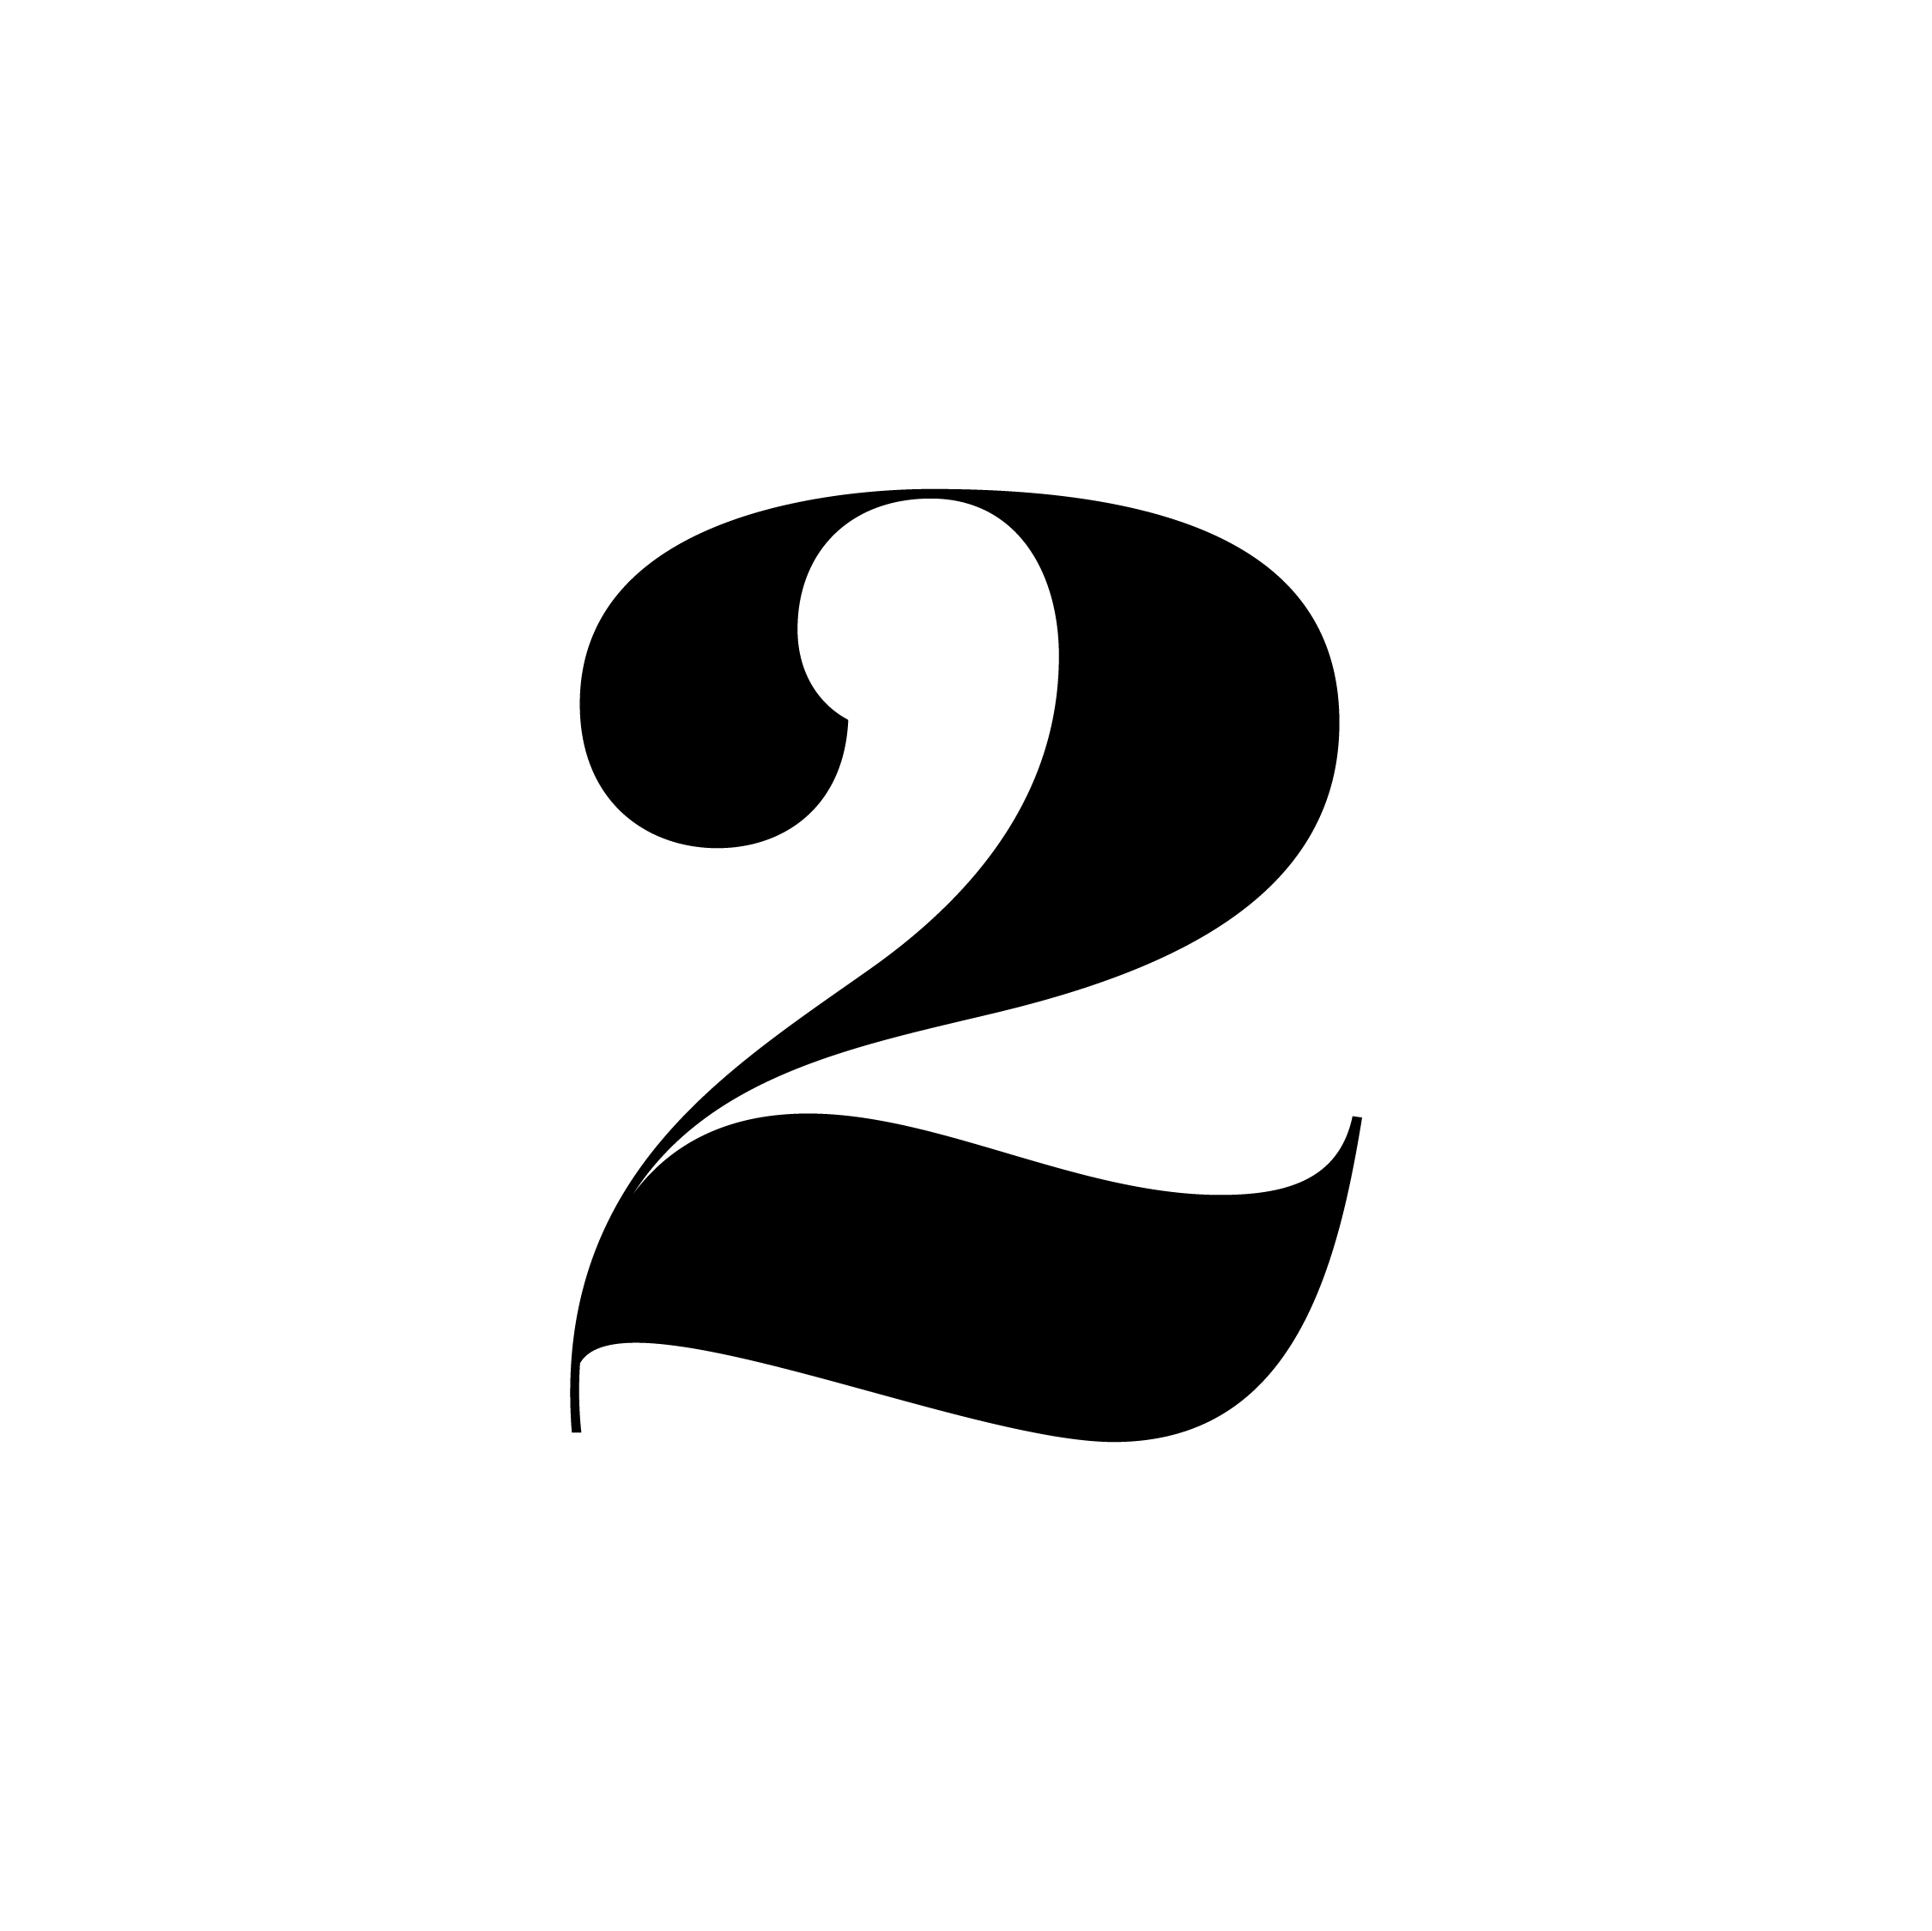 Numbers-02.png